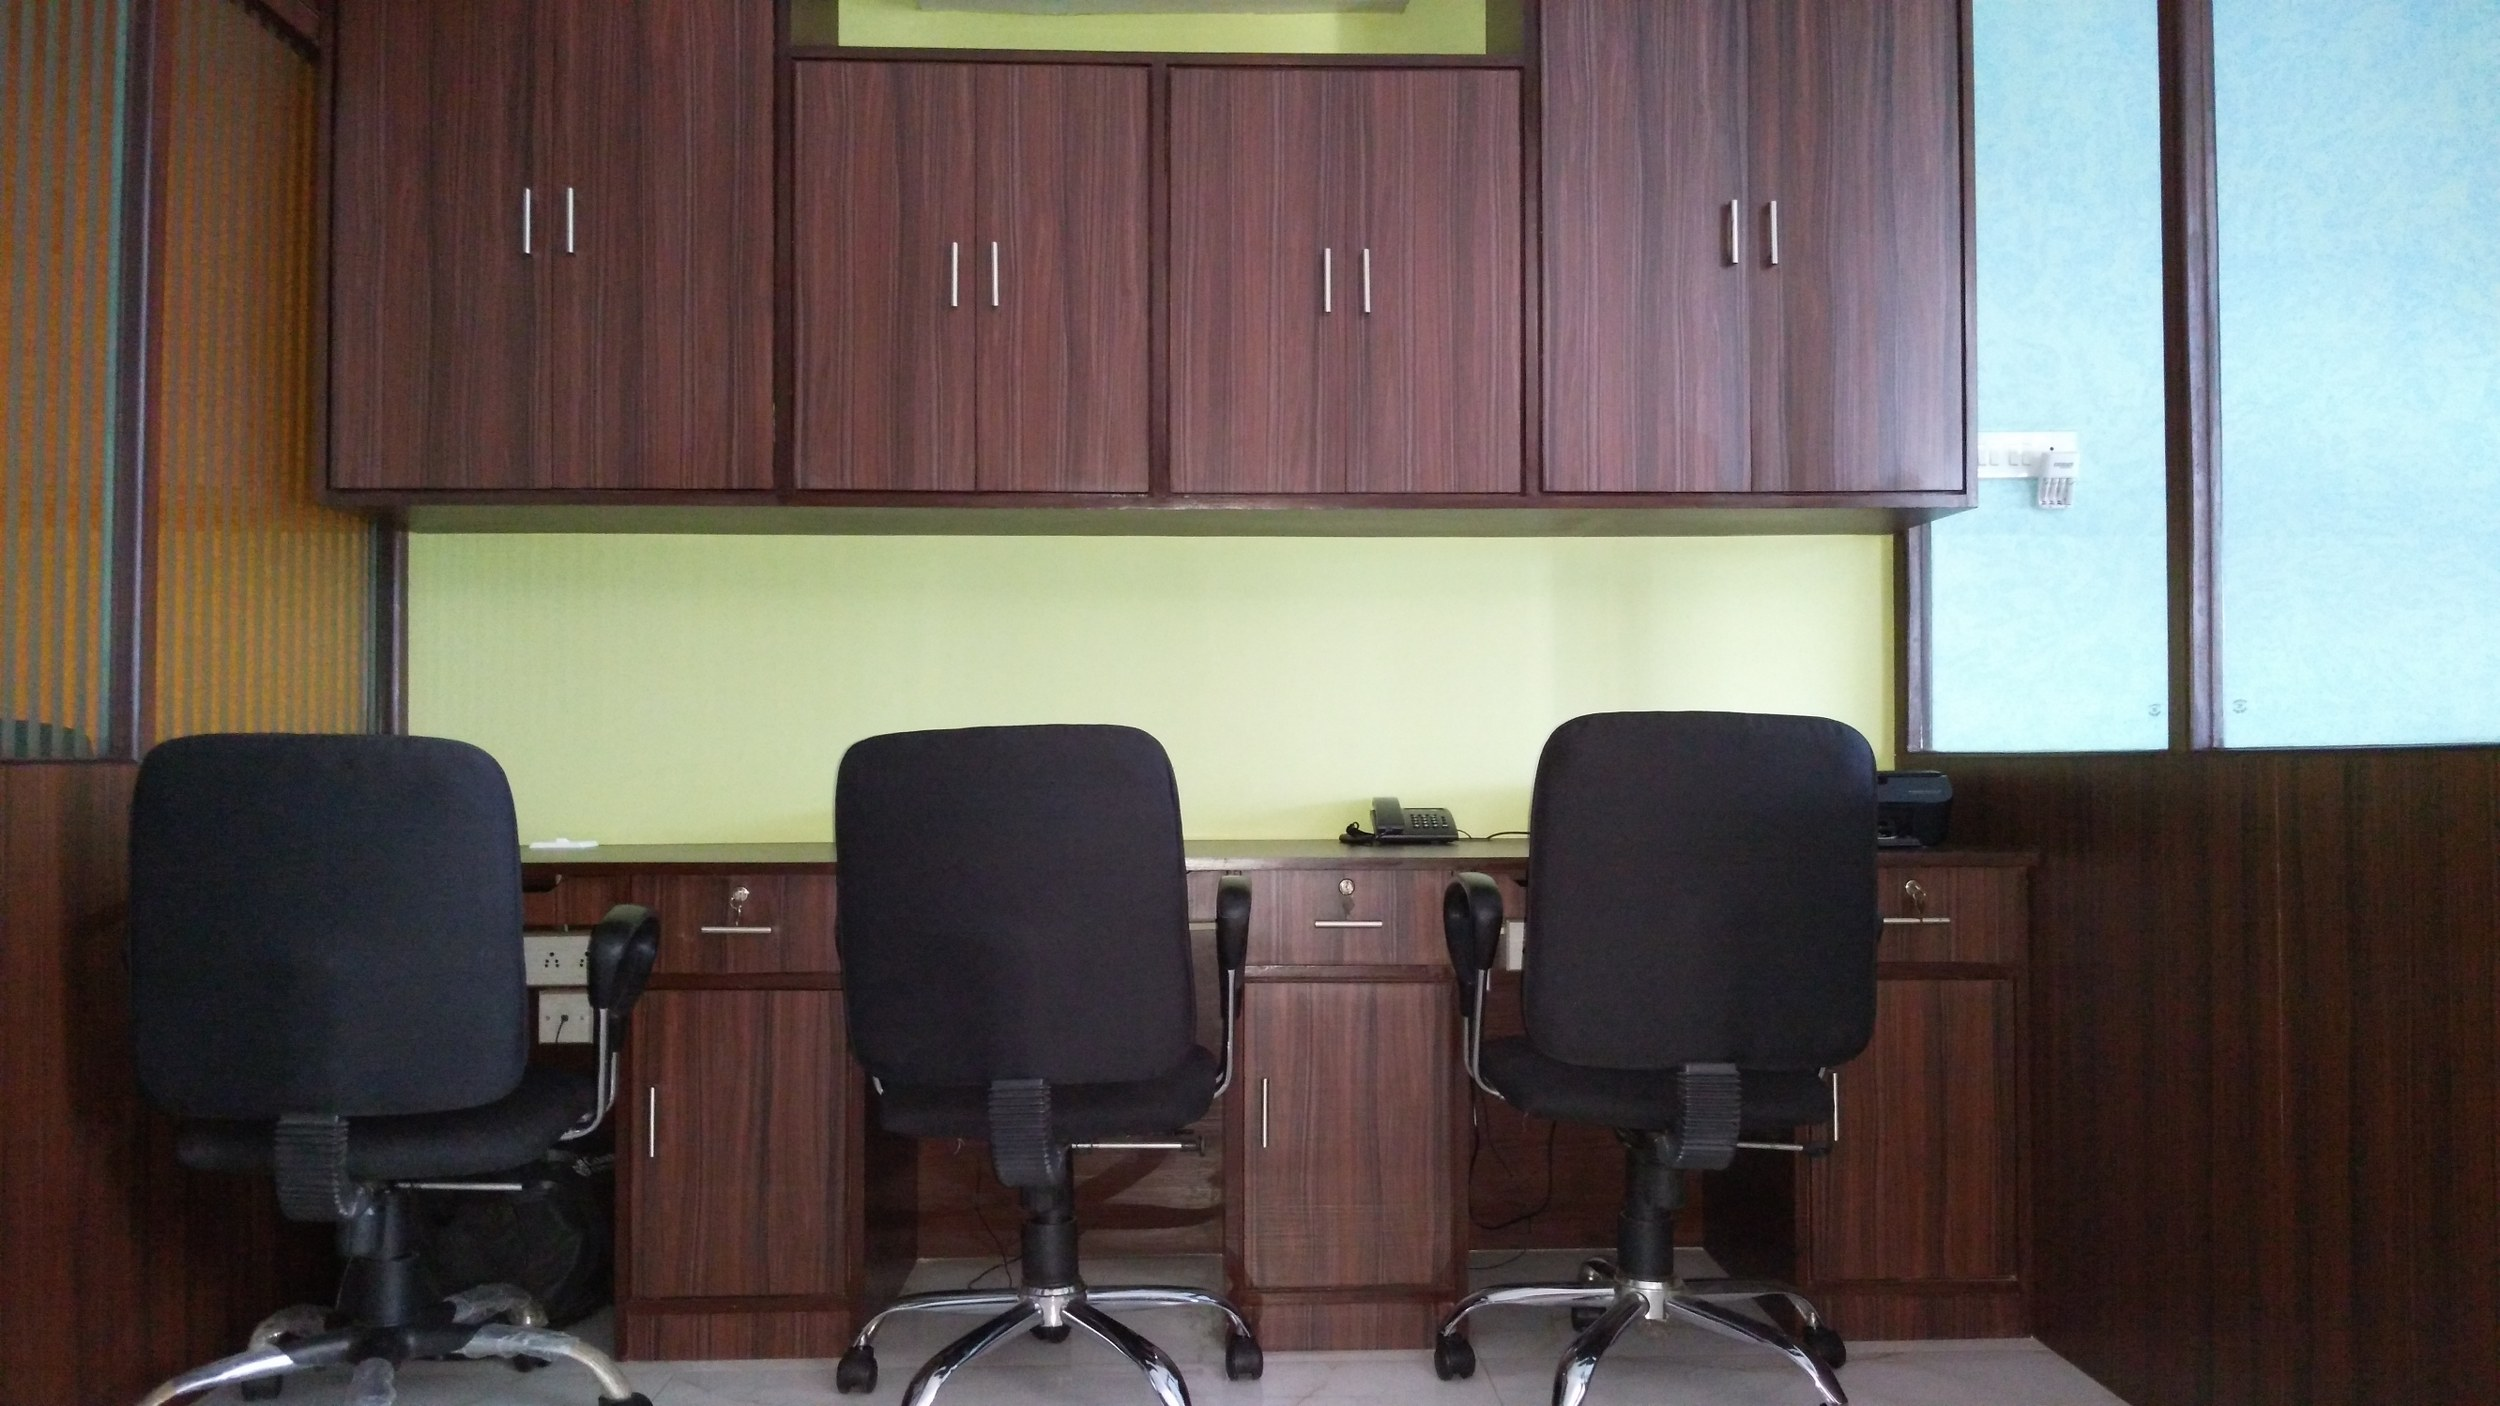 CoKarya Shared Office Spaces, Kolkata